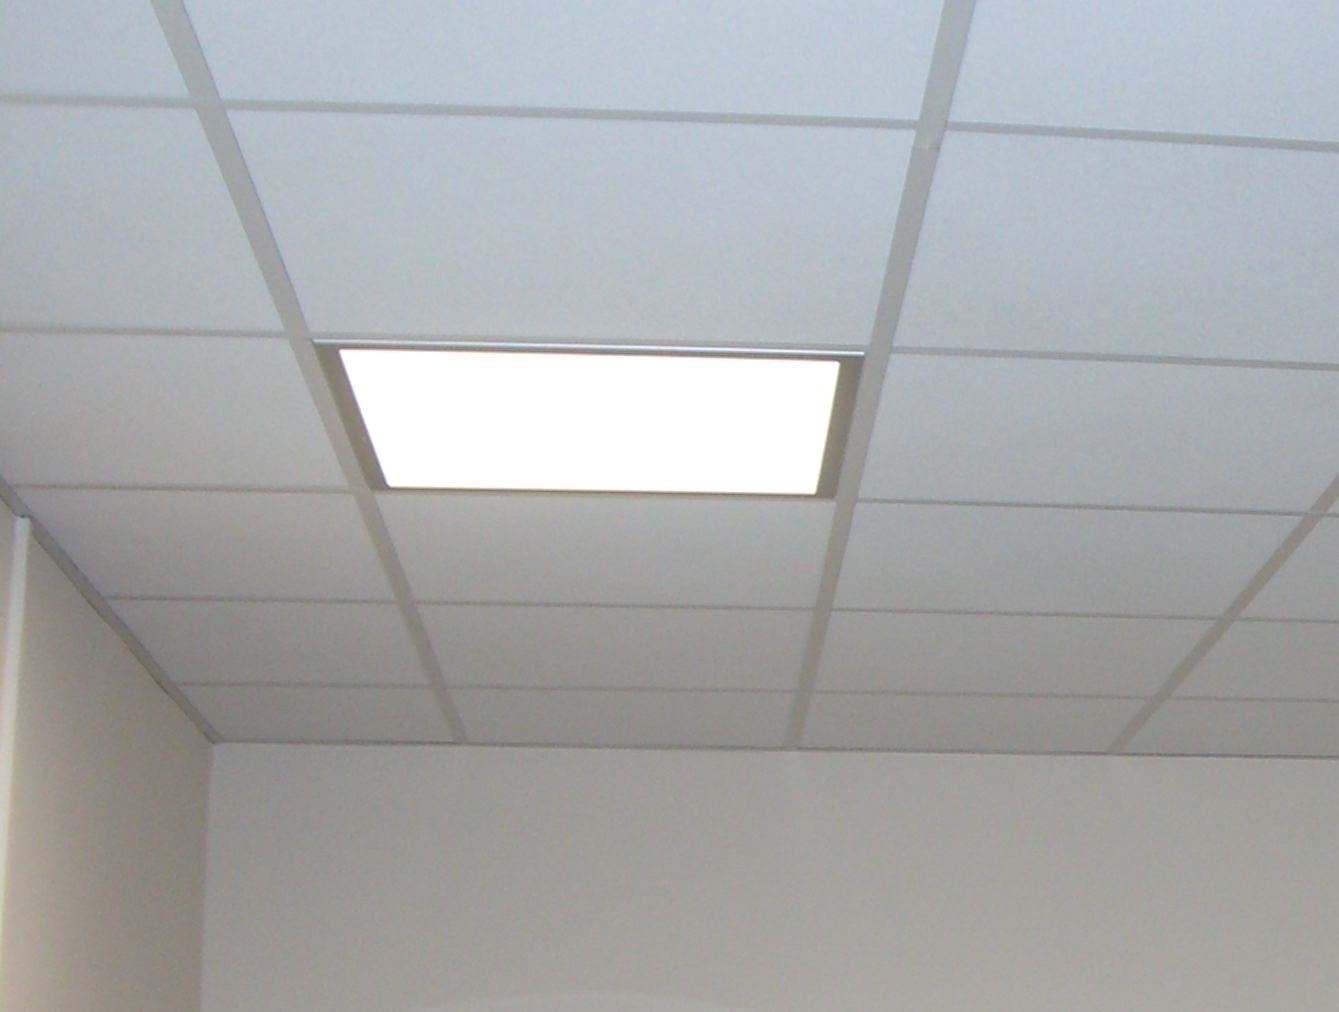 Insulation Above Suspended Ceiling Tiles